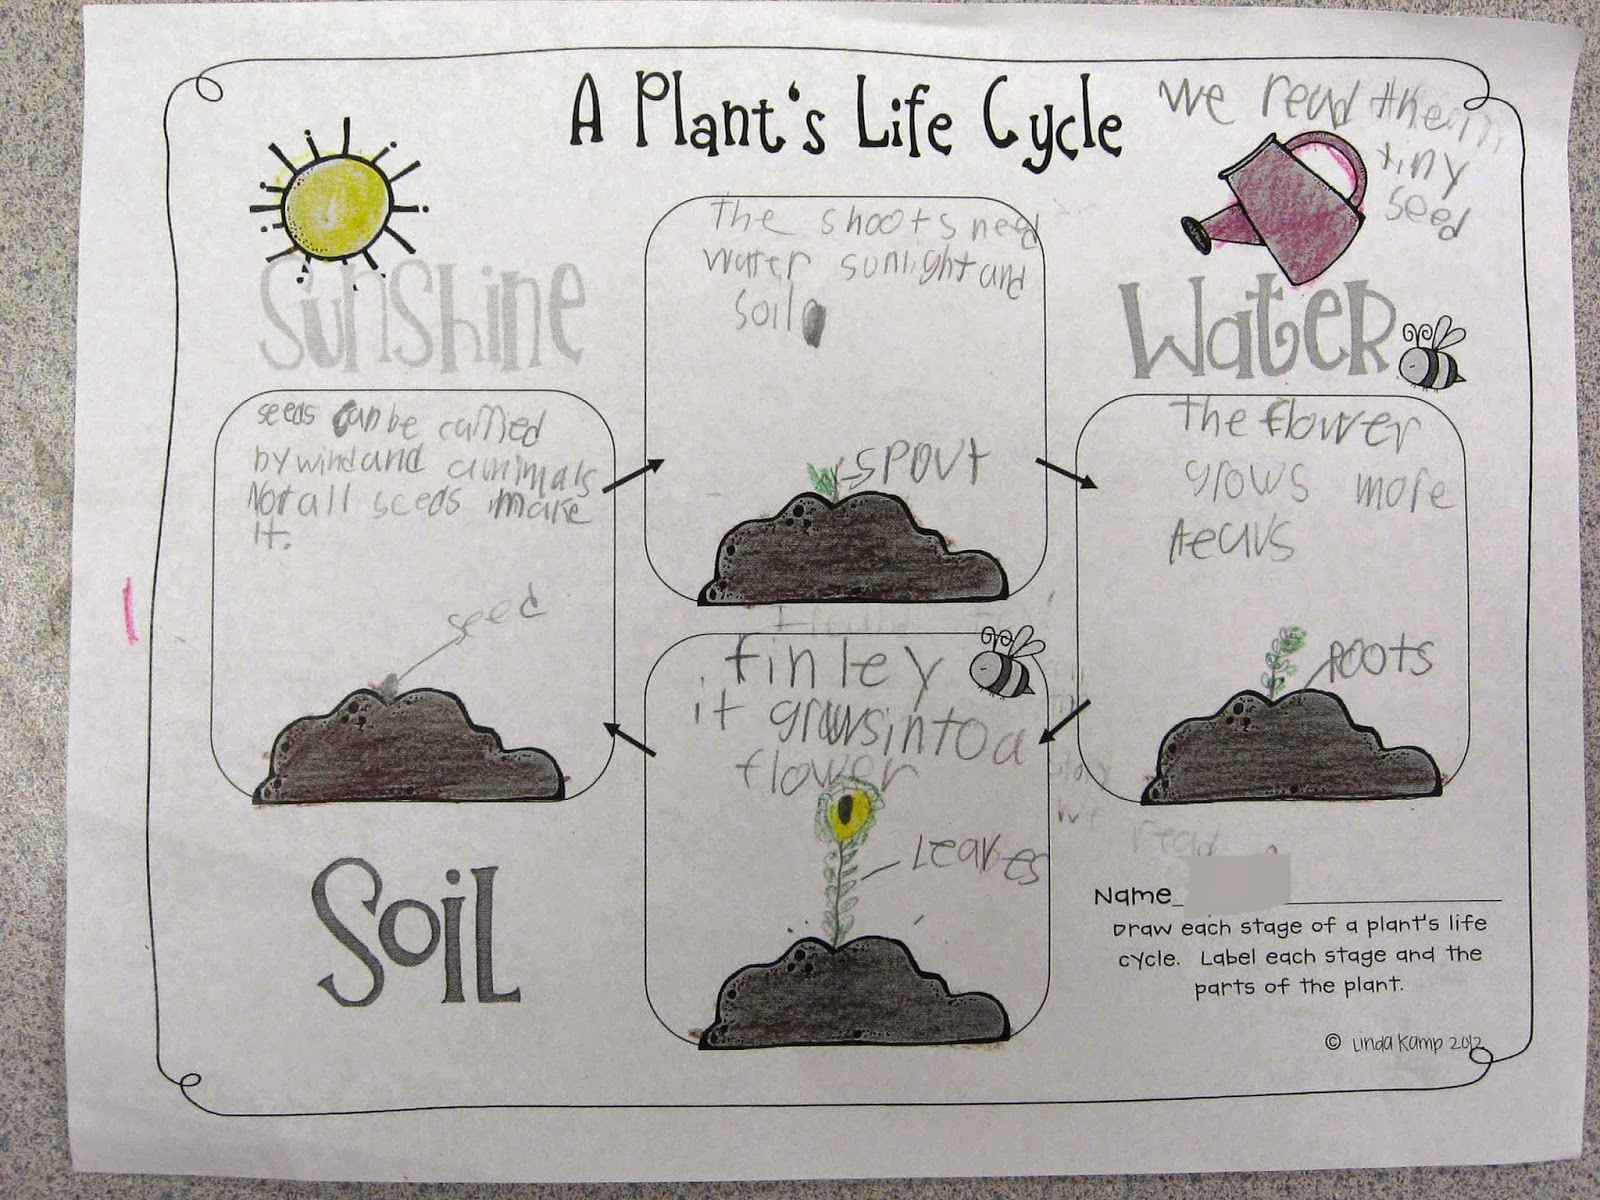 photosynthesis process diagram for 5th grade hopkins 7 pin trailer wiring home codes around the kampfire: it's plantin' time!